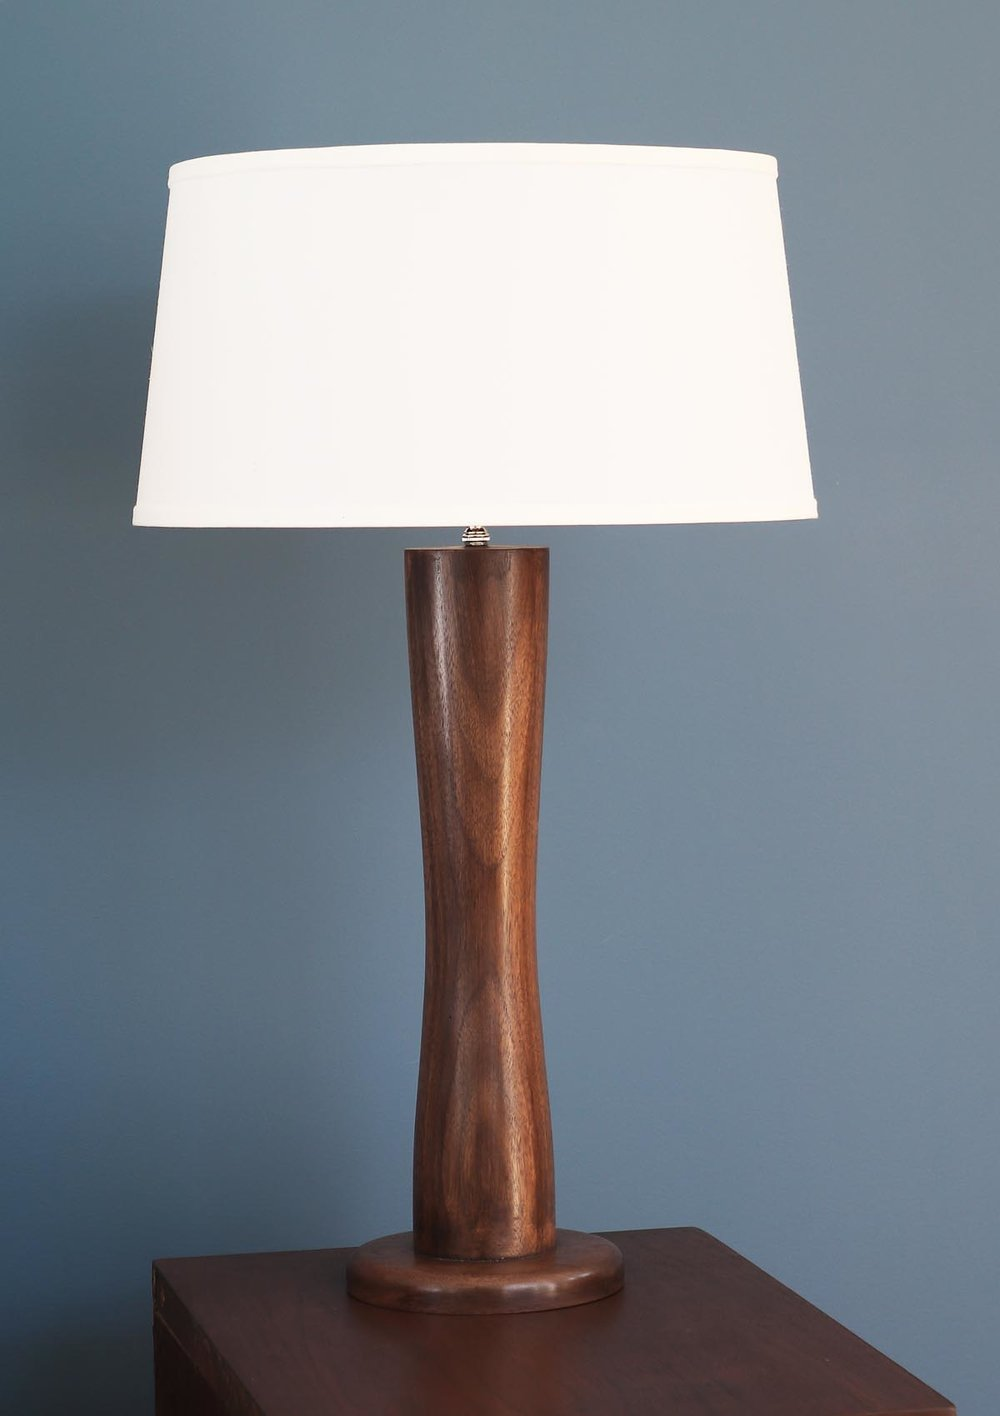 Turned Walnut Large Table Lamp: $350 + Shipping